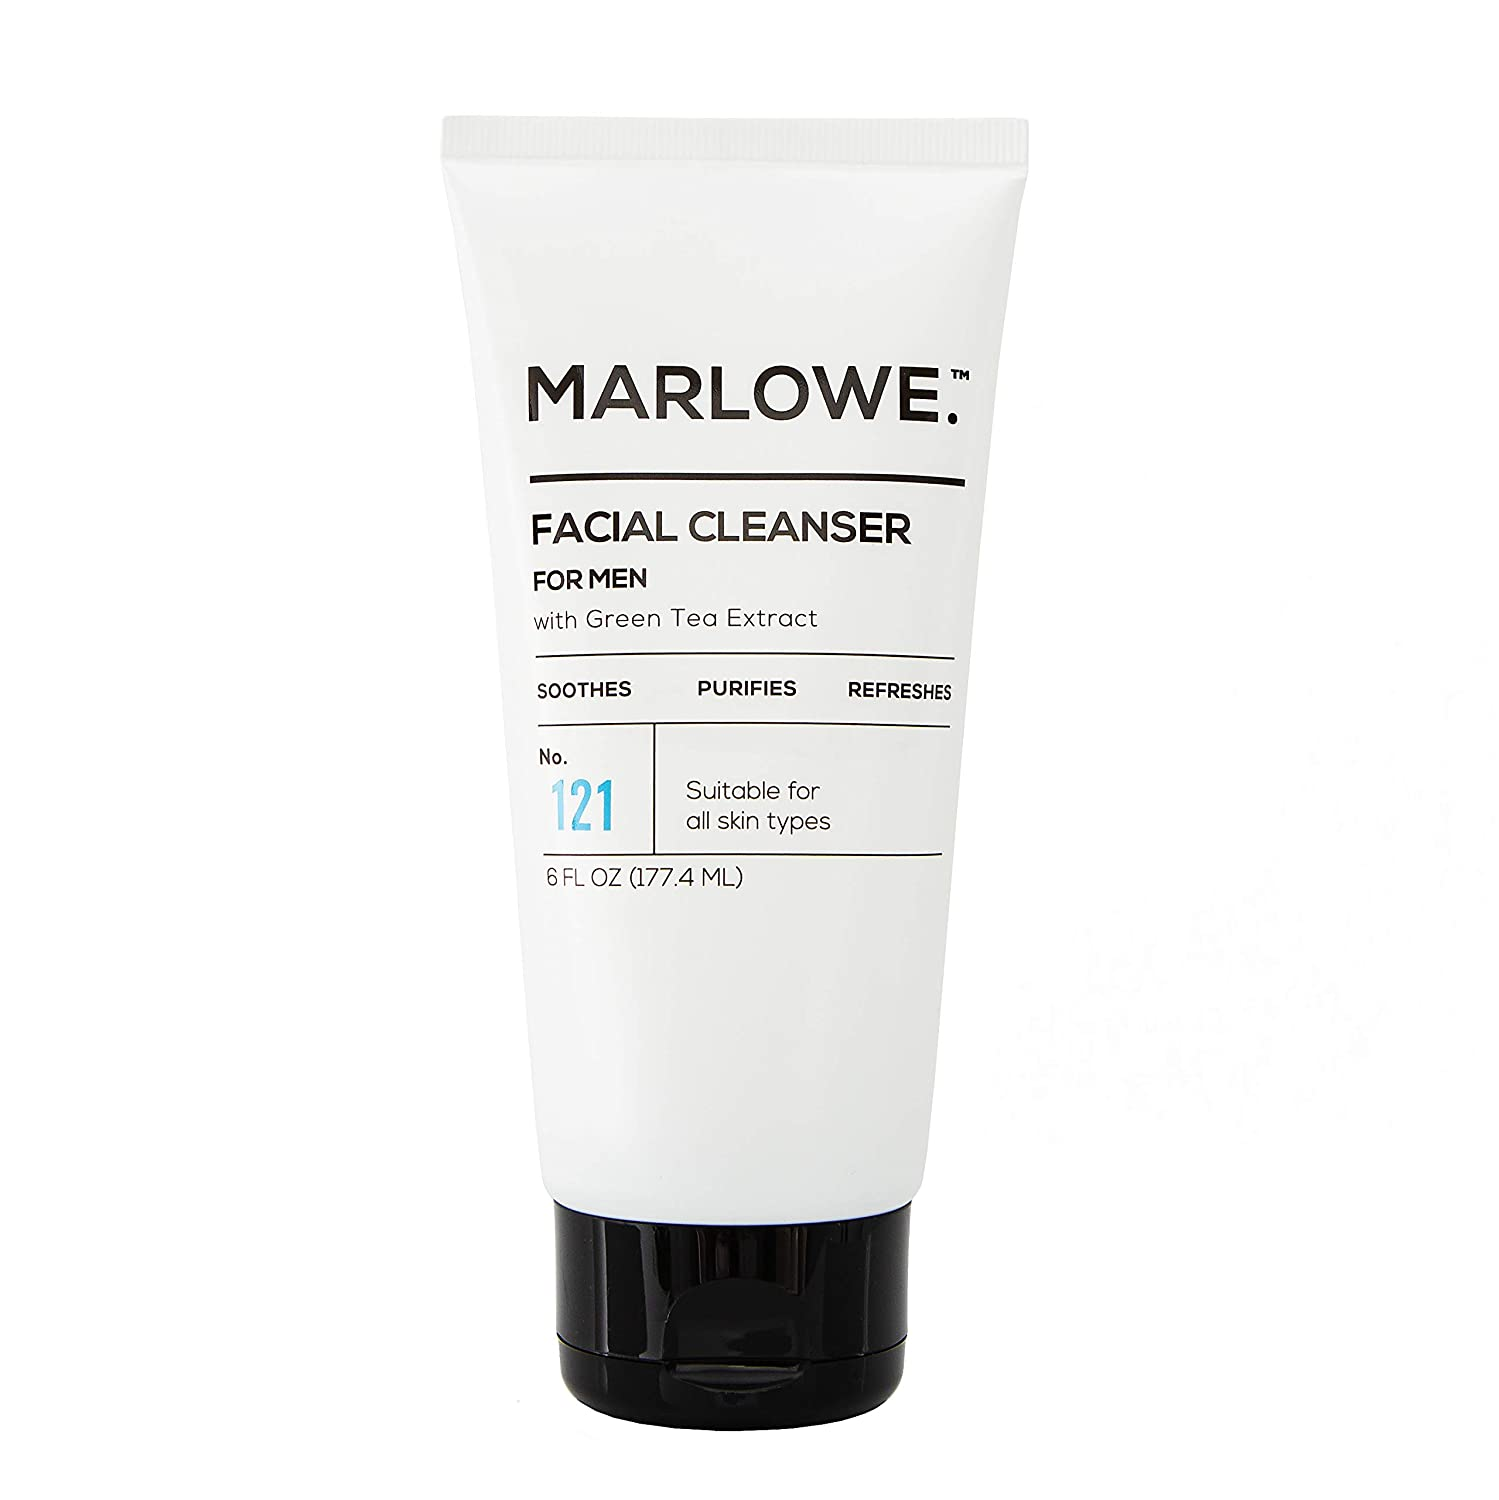 MARLOWE. No. 121 Facial Cleanser for Men 6oz | Daily Face Wash with Natural Extracts & Antioxidants | Soothes, Purifies, Refreshes | Thick Lather, No More Dry